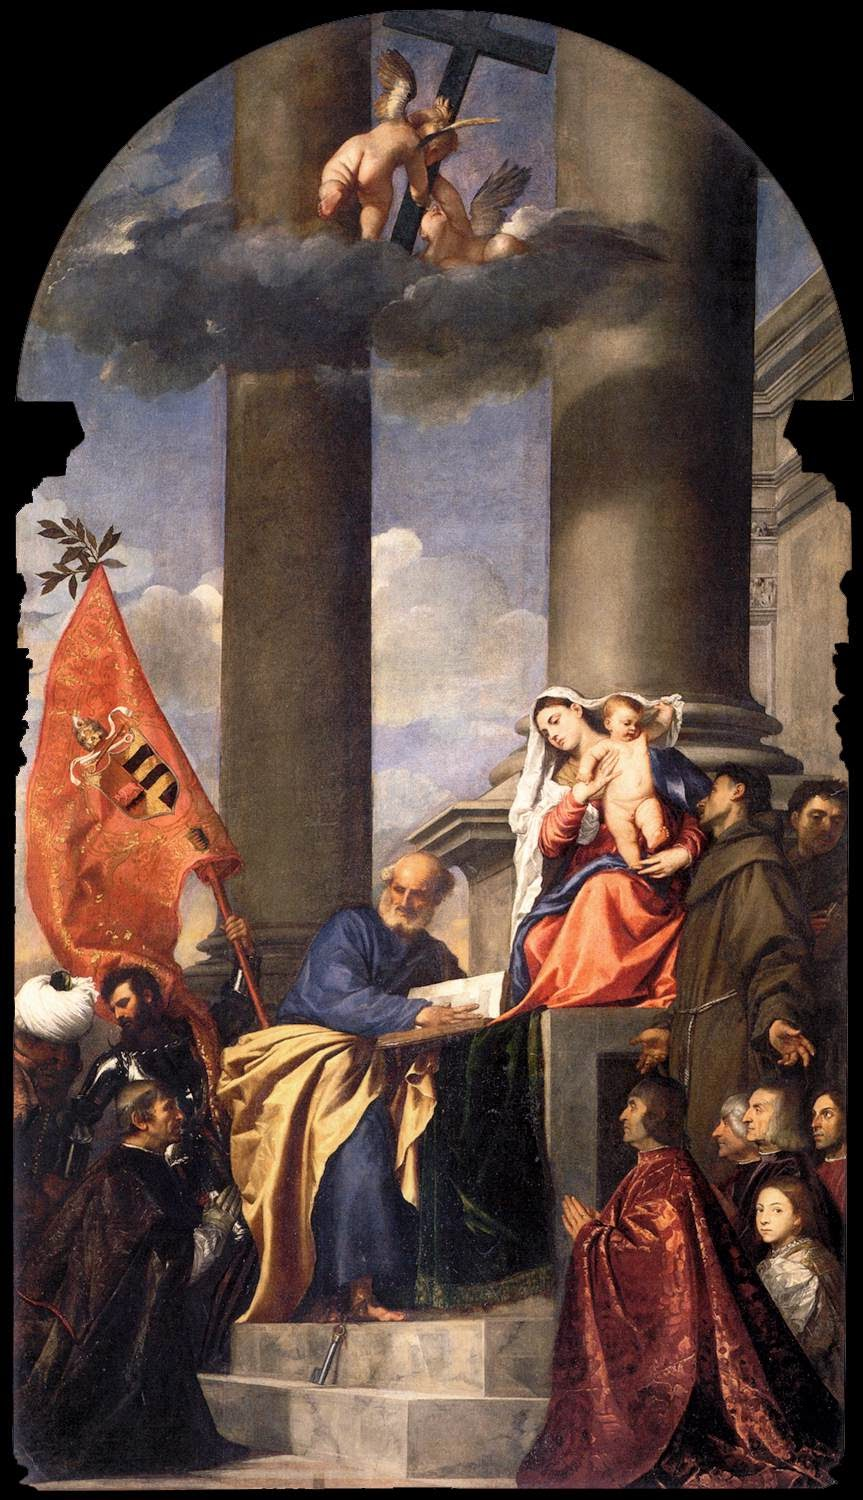 an analysis of the two altarpieces pesaro and assunta by titian A teacher's guide to the signet classics edition of william shakespeare's the merchant of venice 3 table of contents introduction.